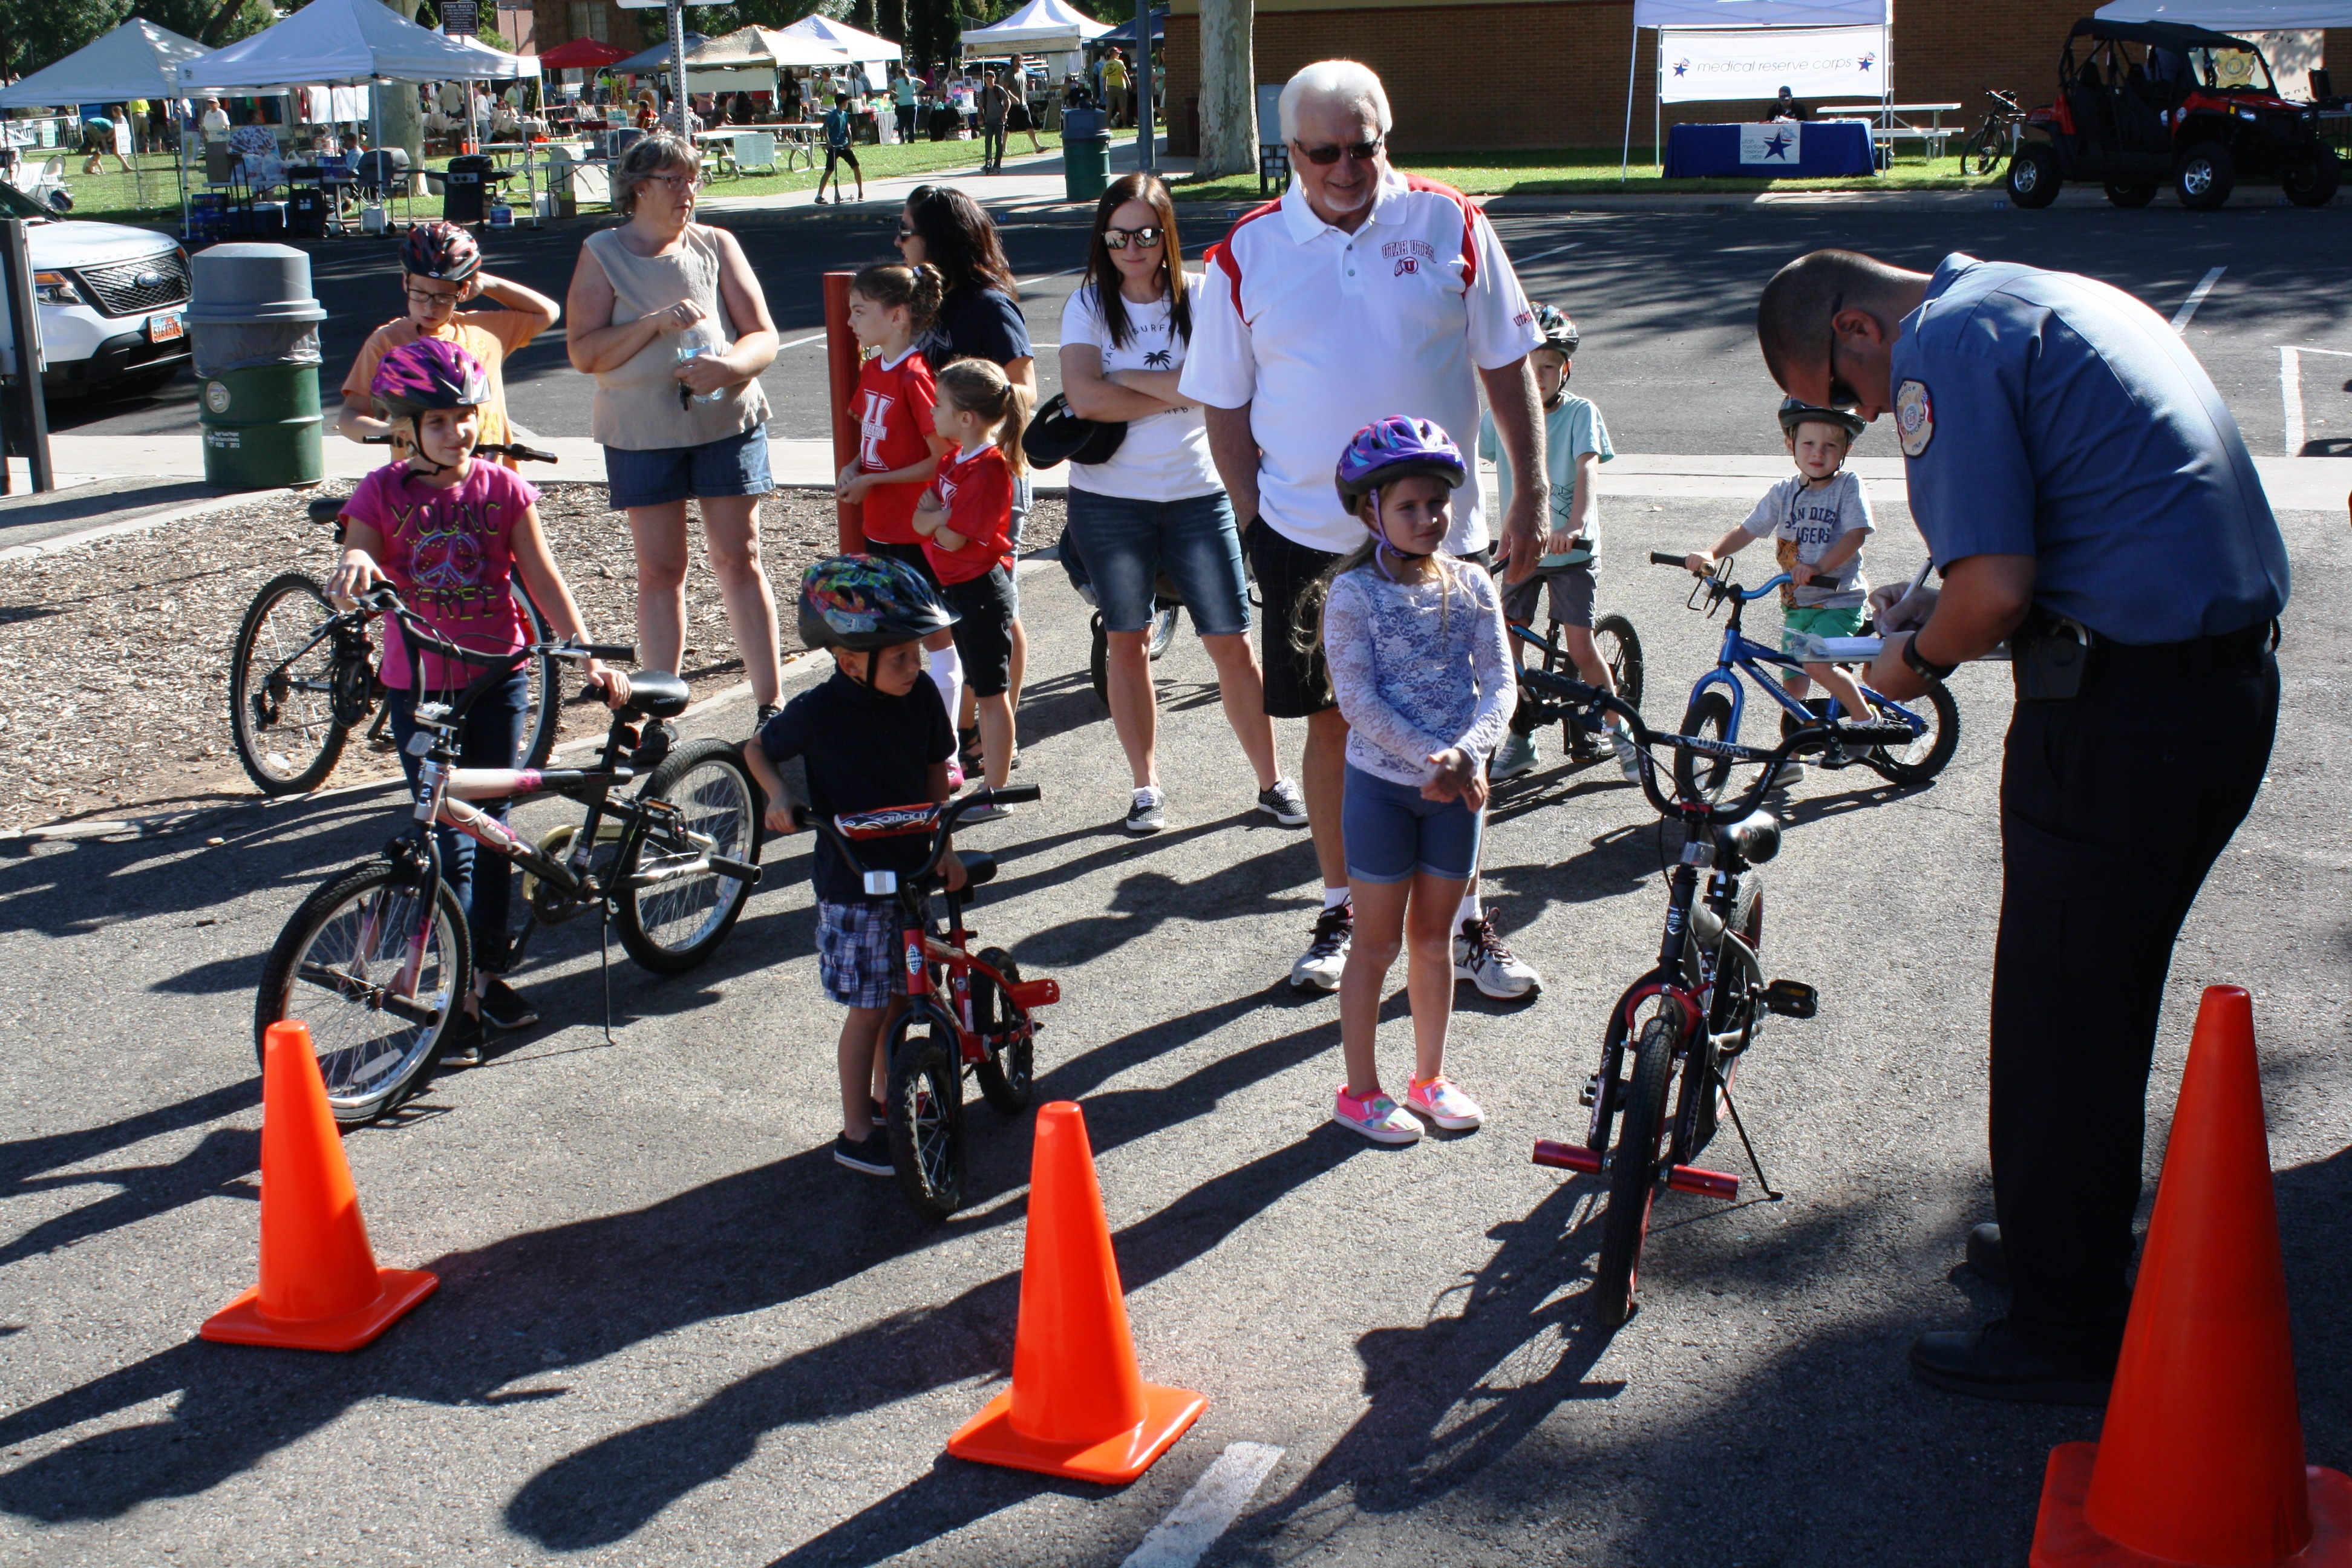 Hurricane City Police Officers do safety checks on children's bicycles at the Awareness and Preparedness Fair, Hurricane, Utah, Sept. 10, 2016 | Reuben Wadsworth, St. George News